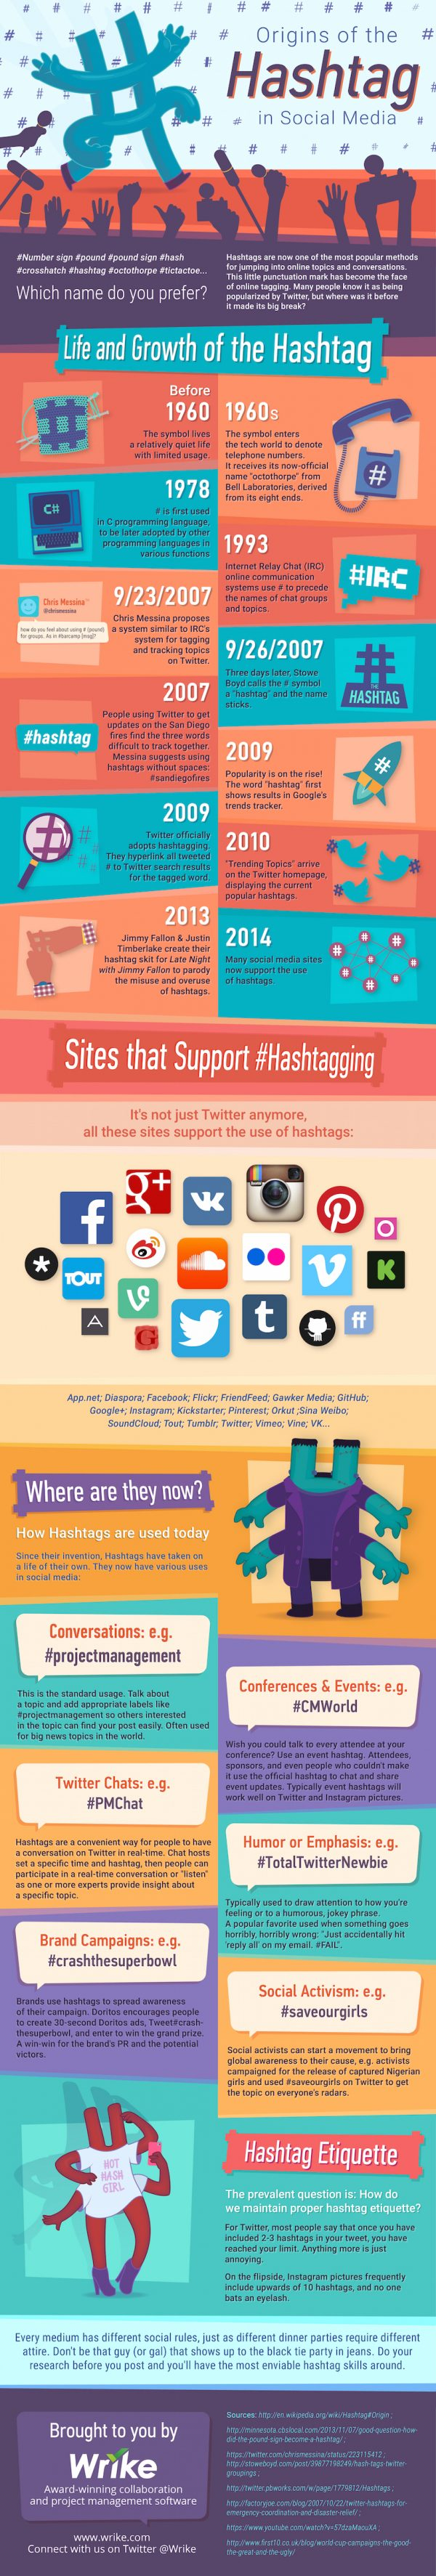 Origin of the #Hashtag in Social Media